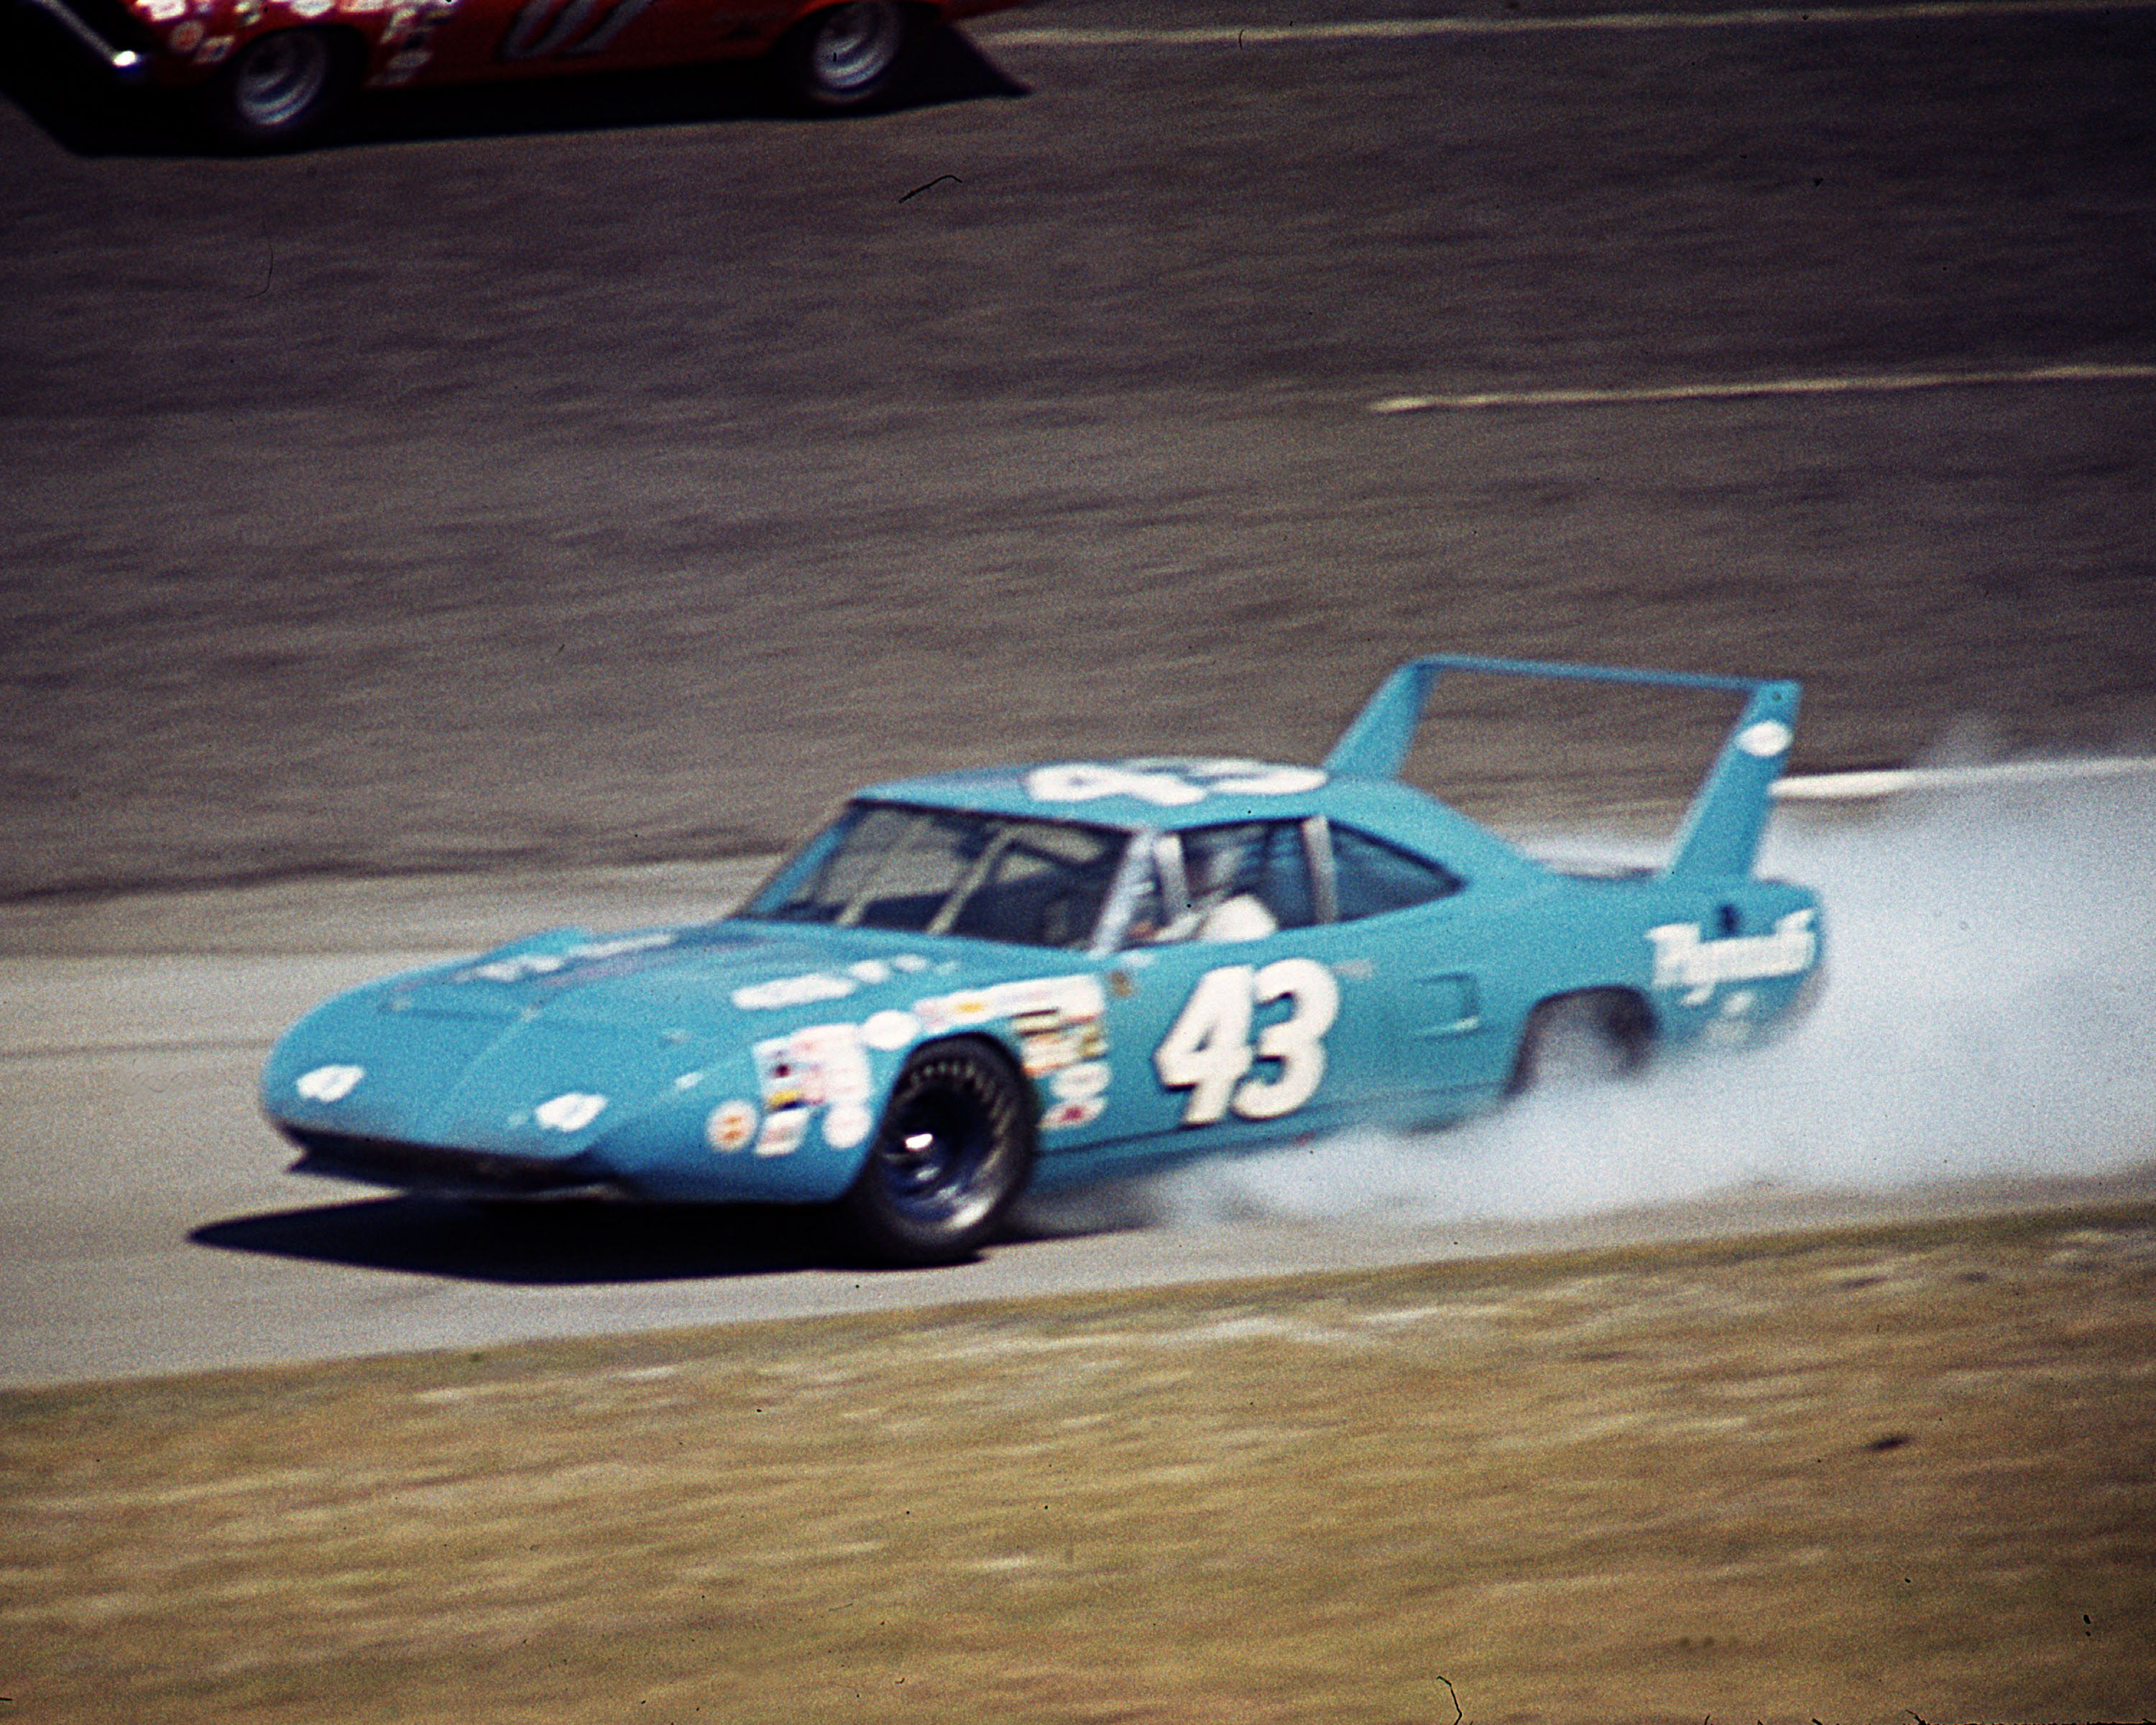 DAYTONA BEACH, FL — February 22, 1970:  Richard Petty hangs on to his winged Plymouth Superbird as the engine blows up on lap seven of the Daytona 500 NASCAR Cup race.  Although Petty was scored in next-to-last position (39th), his teammate Pete Hamilton went on to score the victory.  (Photo by ISC Images & Archives via Getty Images)